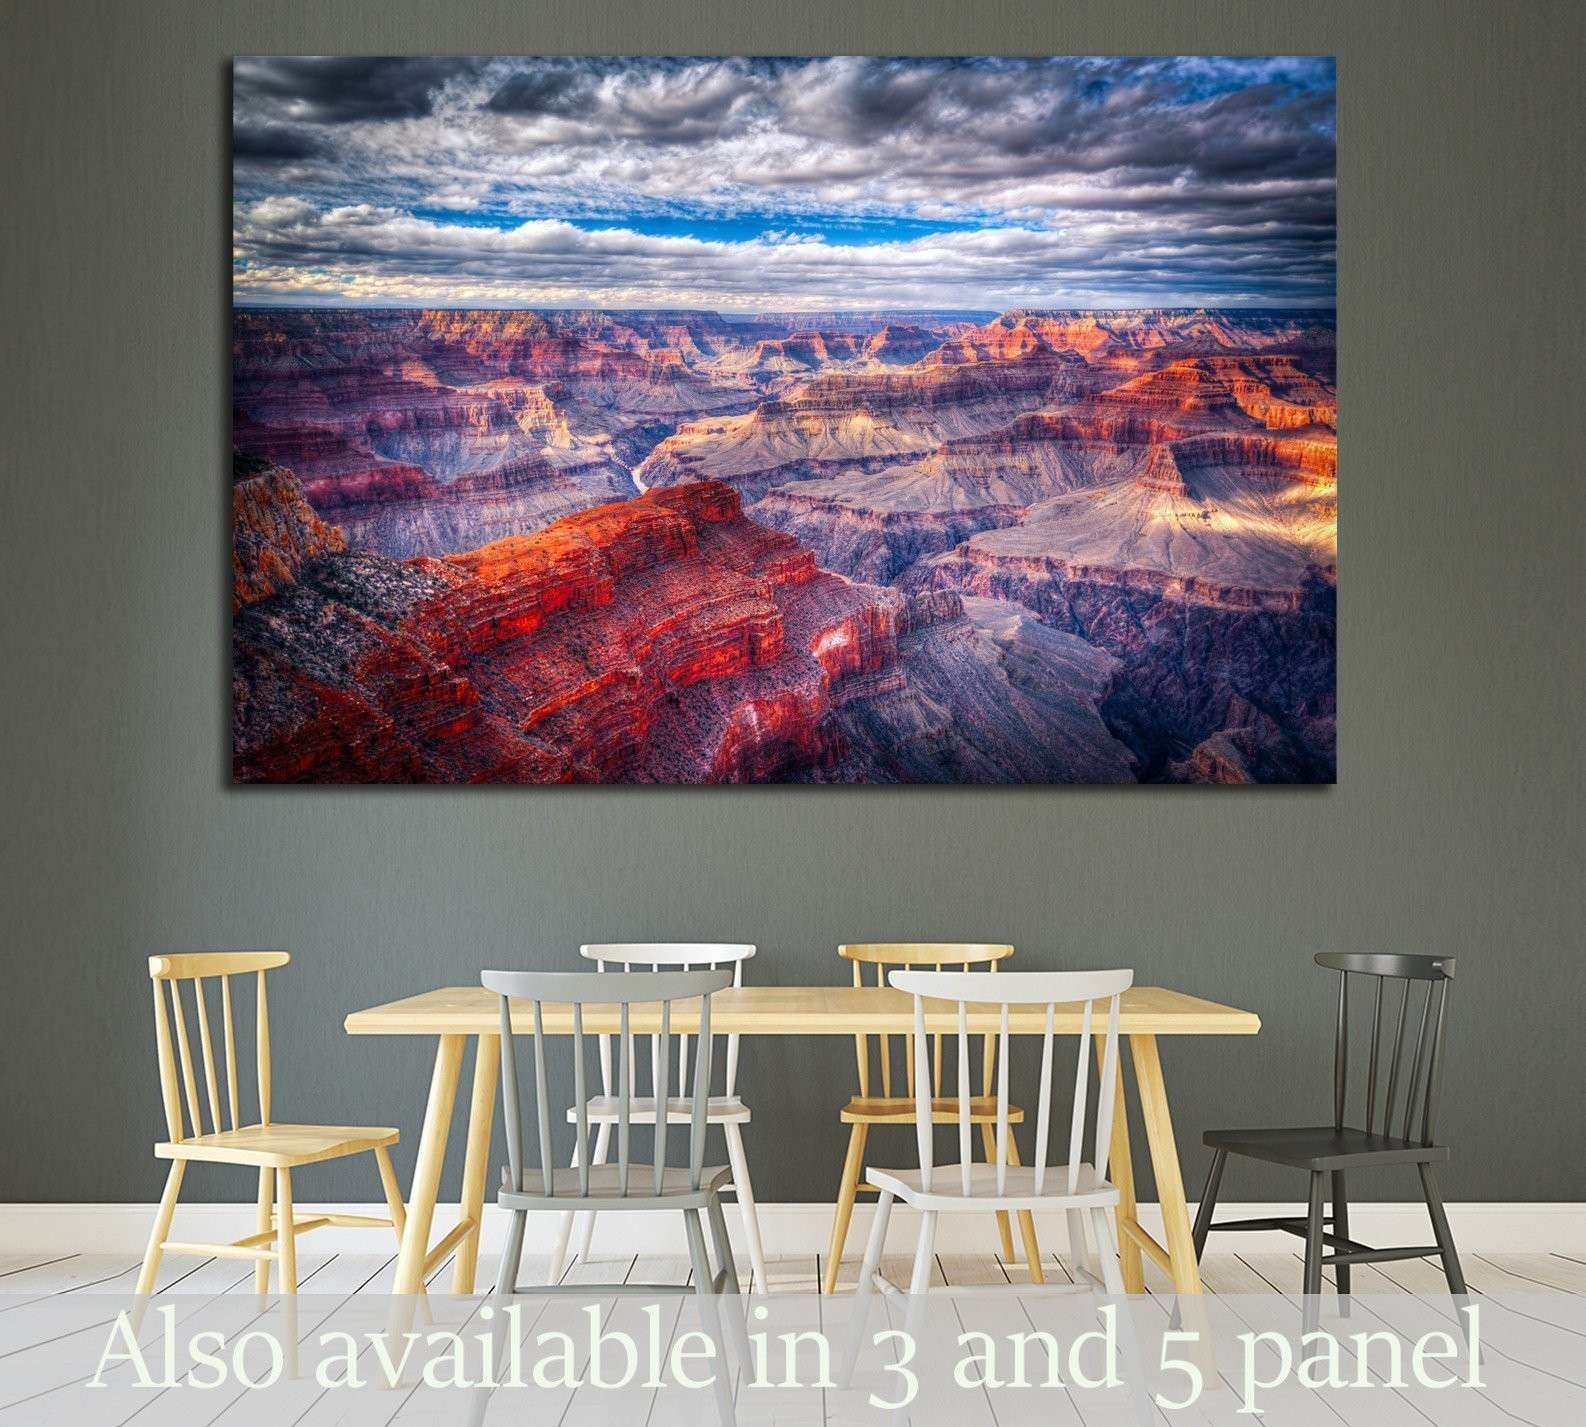 Arizona Wall Art Awesome Landscape Wall Art at Zellart Canvas Arts